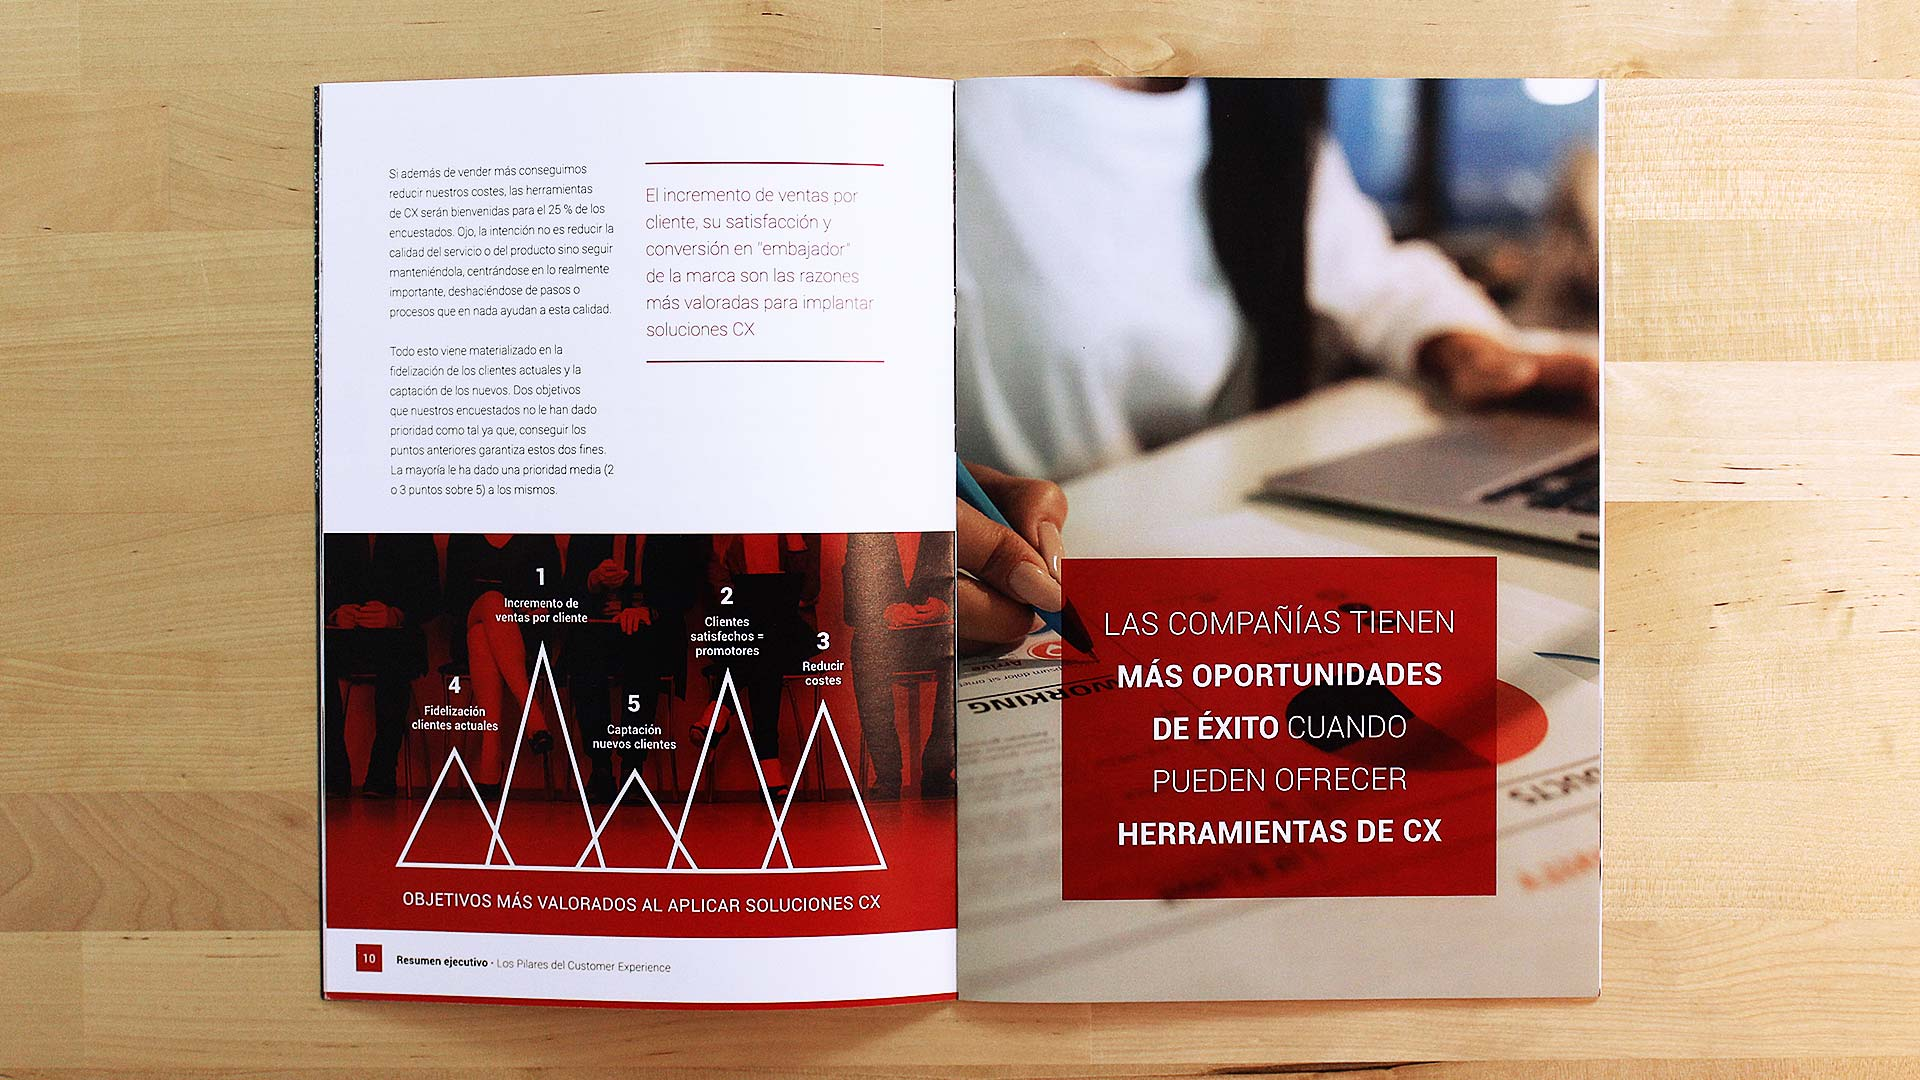 oracle-content-marketing-pilares-customer-experience-2017-06